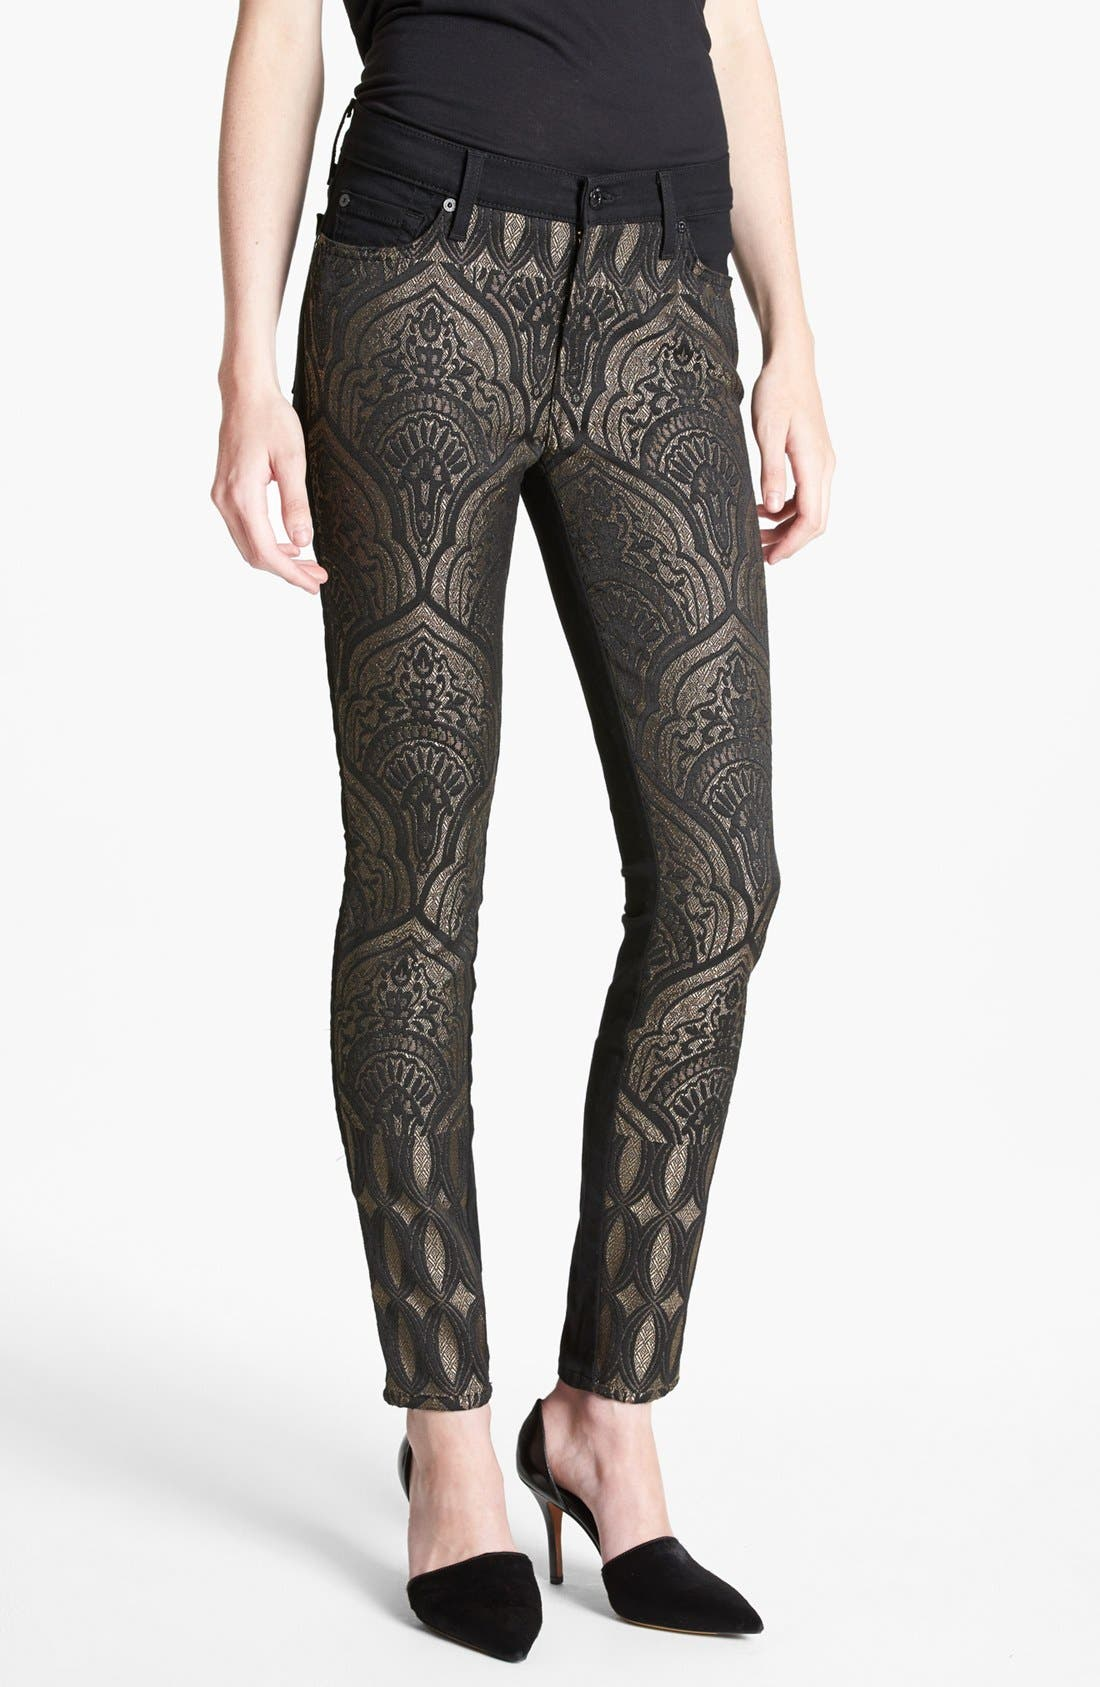 Alternate Image 1 Selected - 7 For All Mankind® 'The Pieced' Skinny Jeans (Art Nouveau Jacquard)